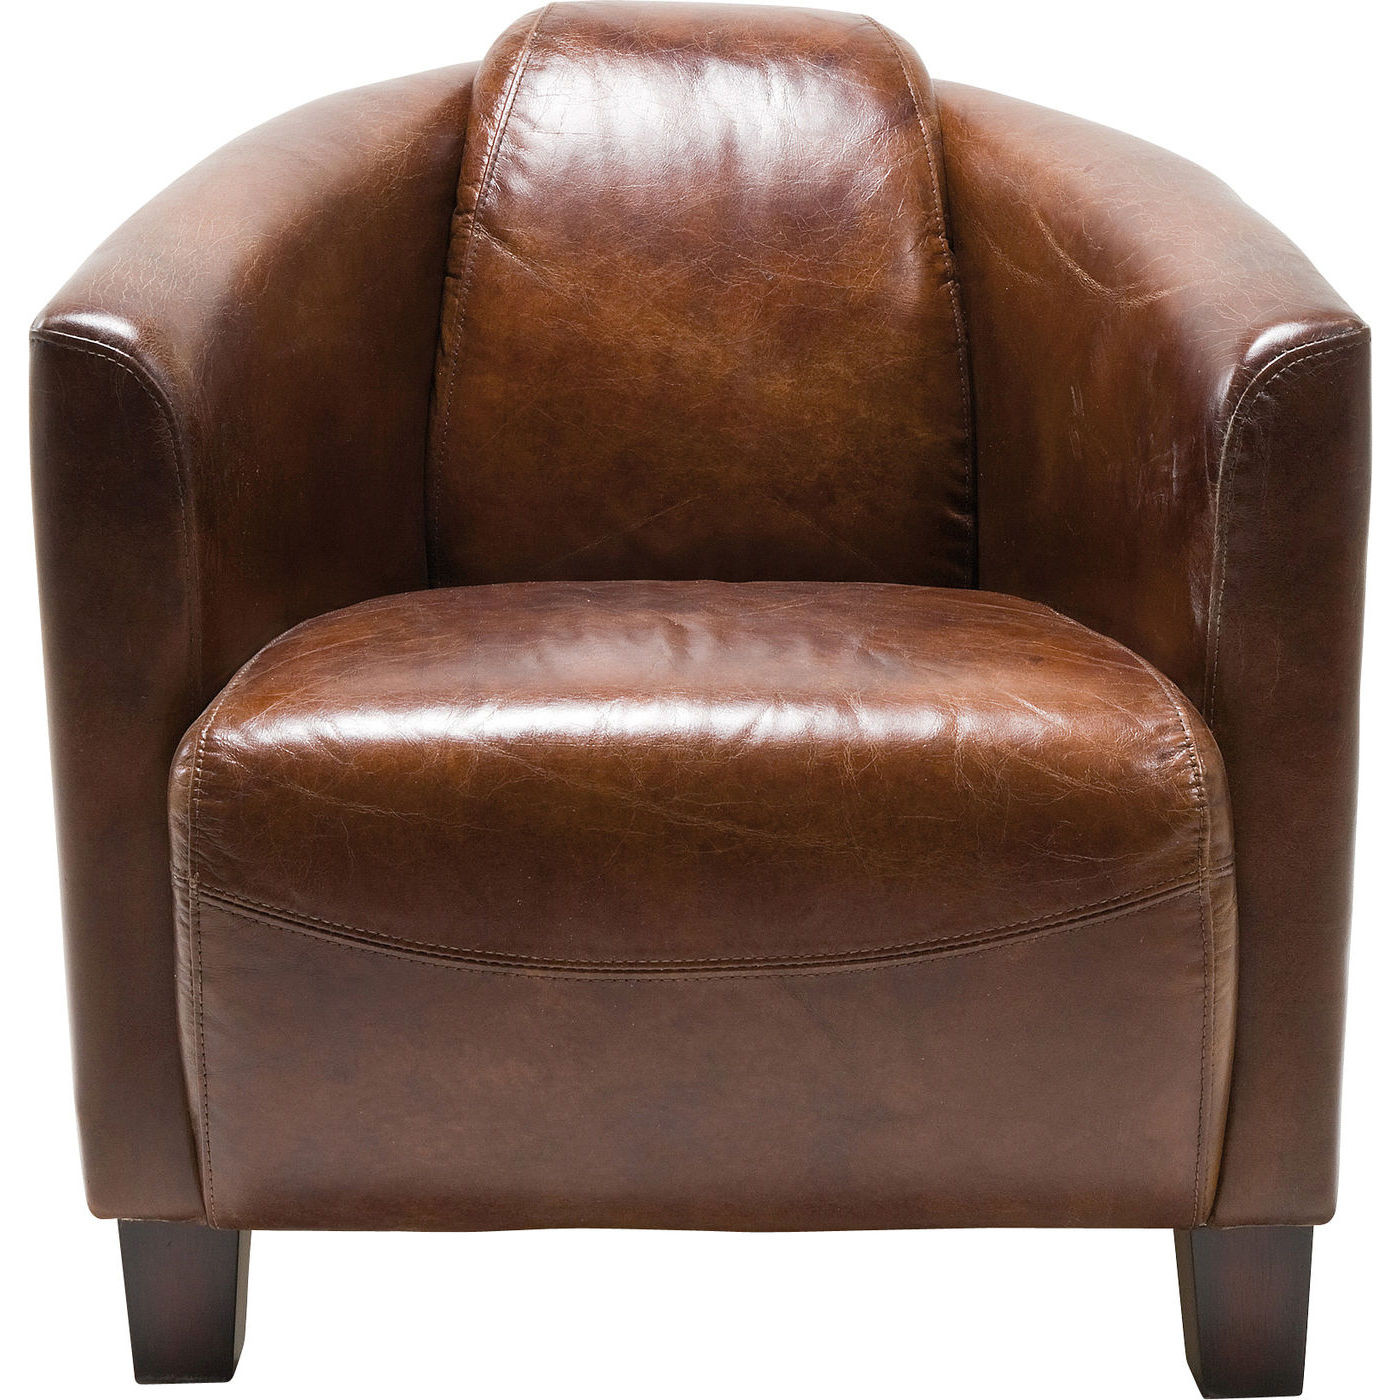 Sessel cigar lounge brown design sessel sessel for Sessel wohnzimmer